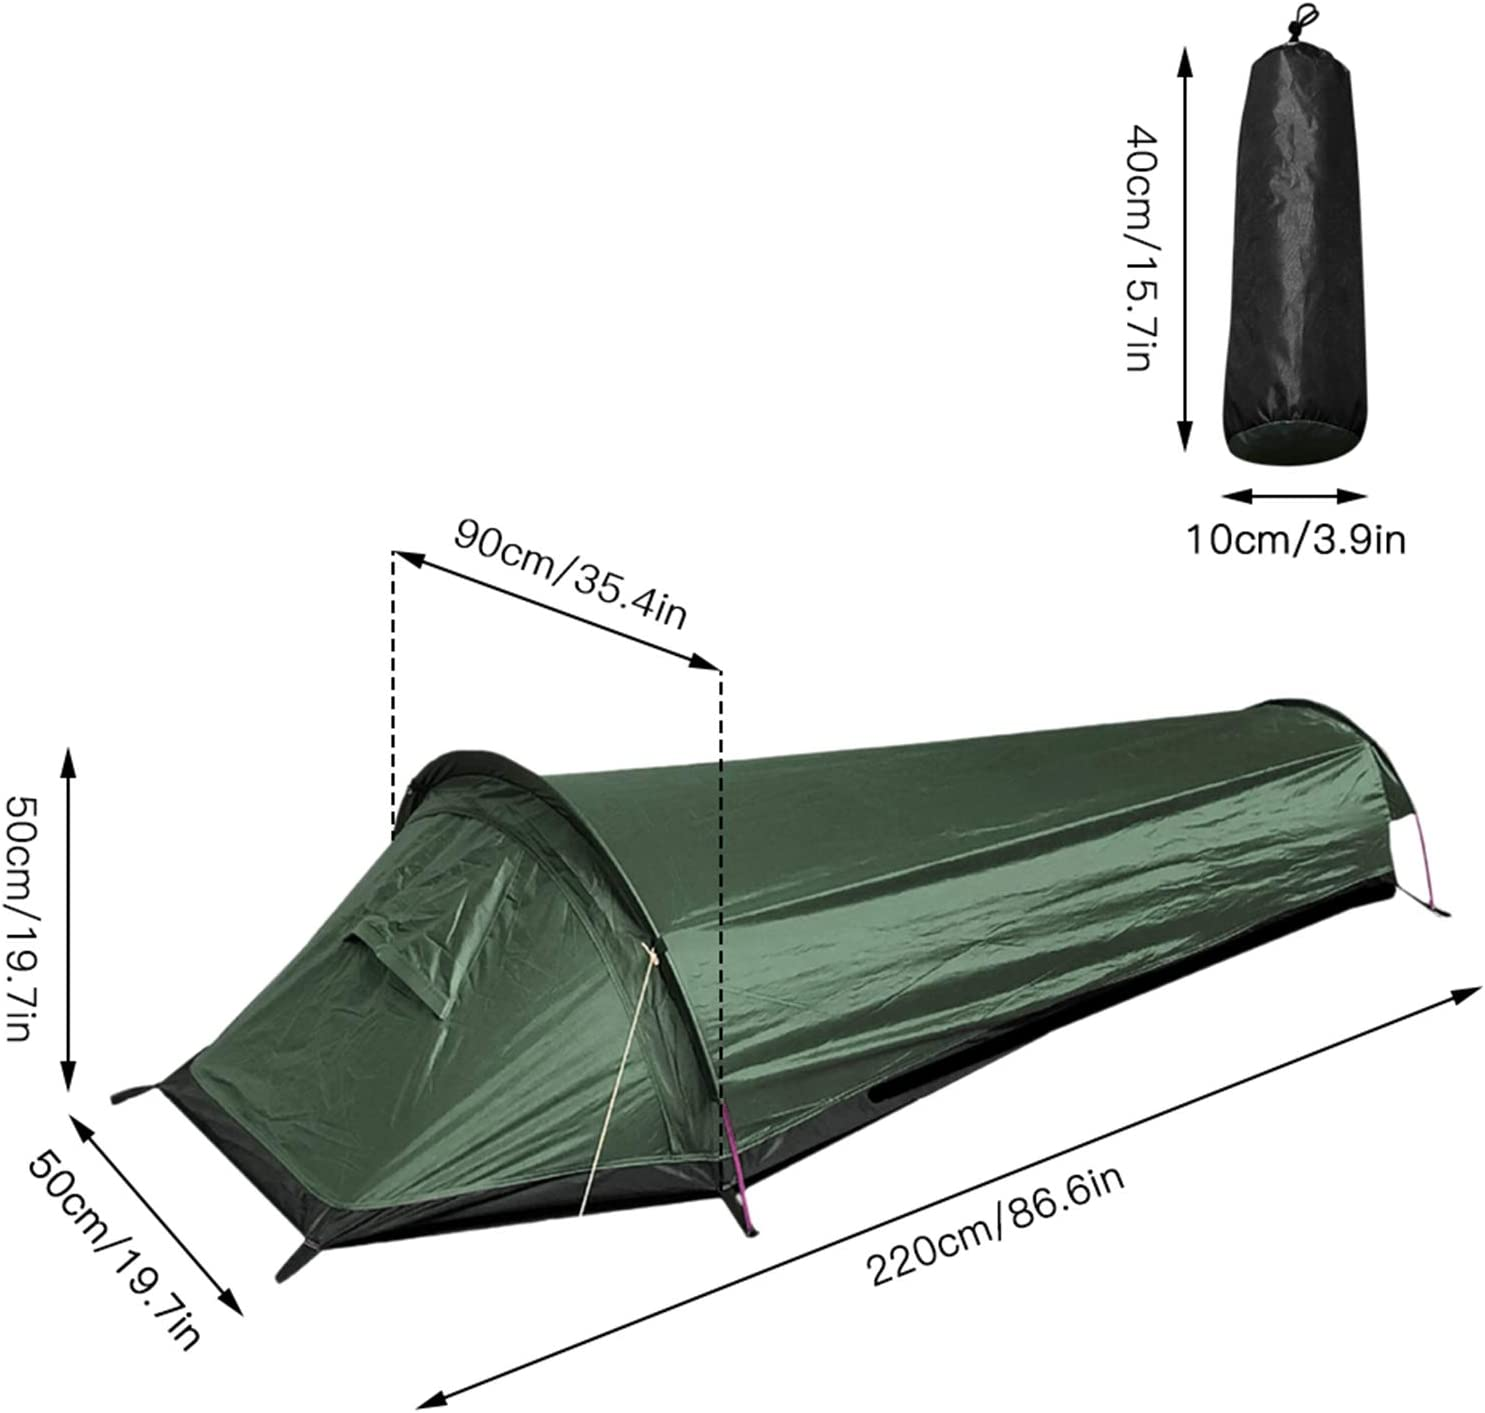 Portable Waterproof Tent for Camping Hiking Lightweight Backpacking Tent with Carry Bag Fltom 1 Person Camping Tent